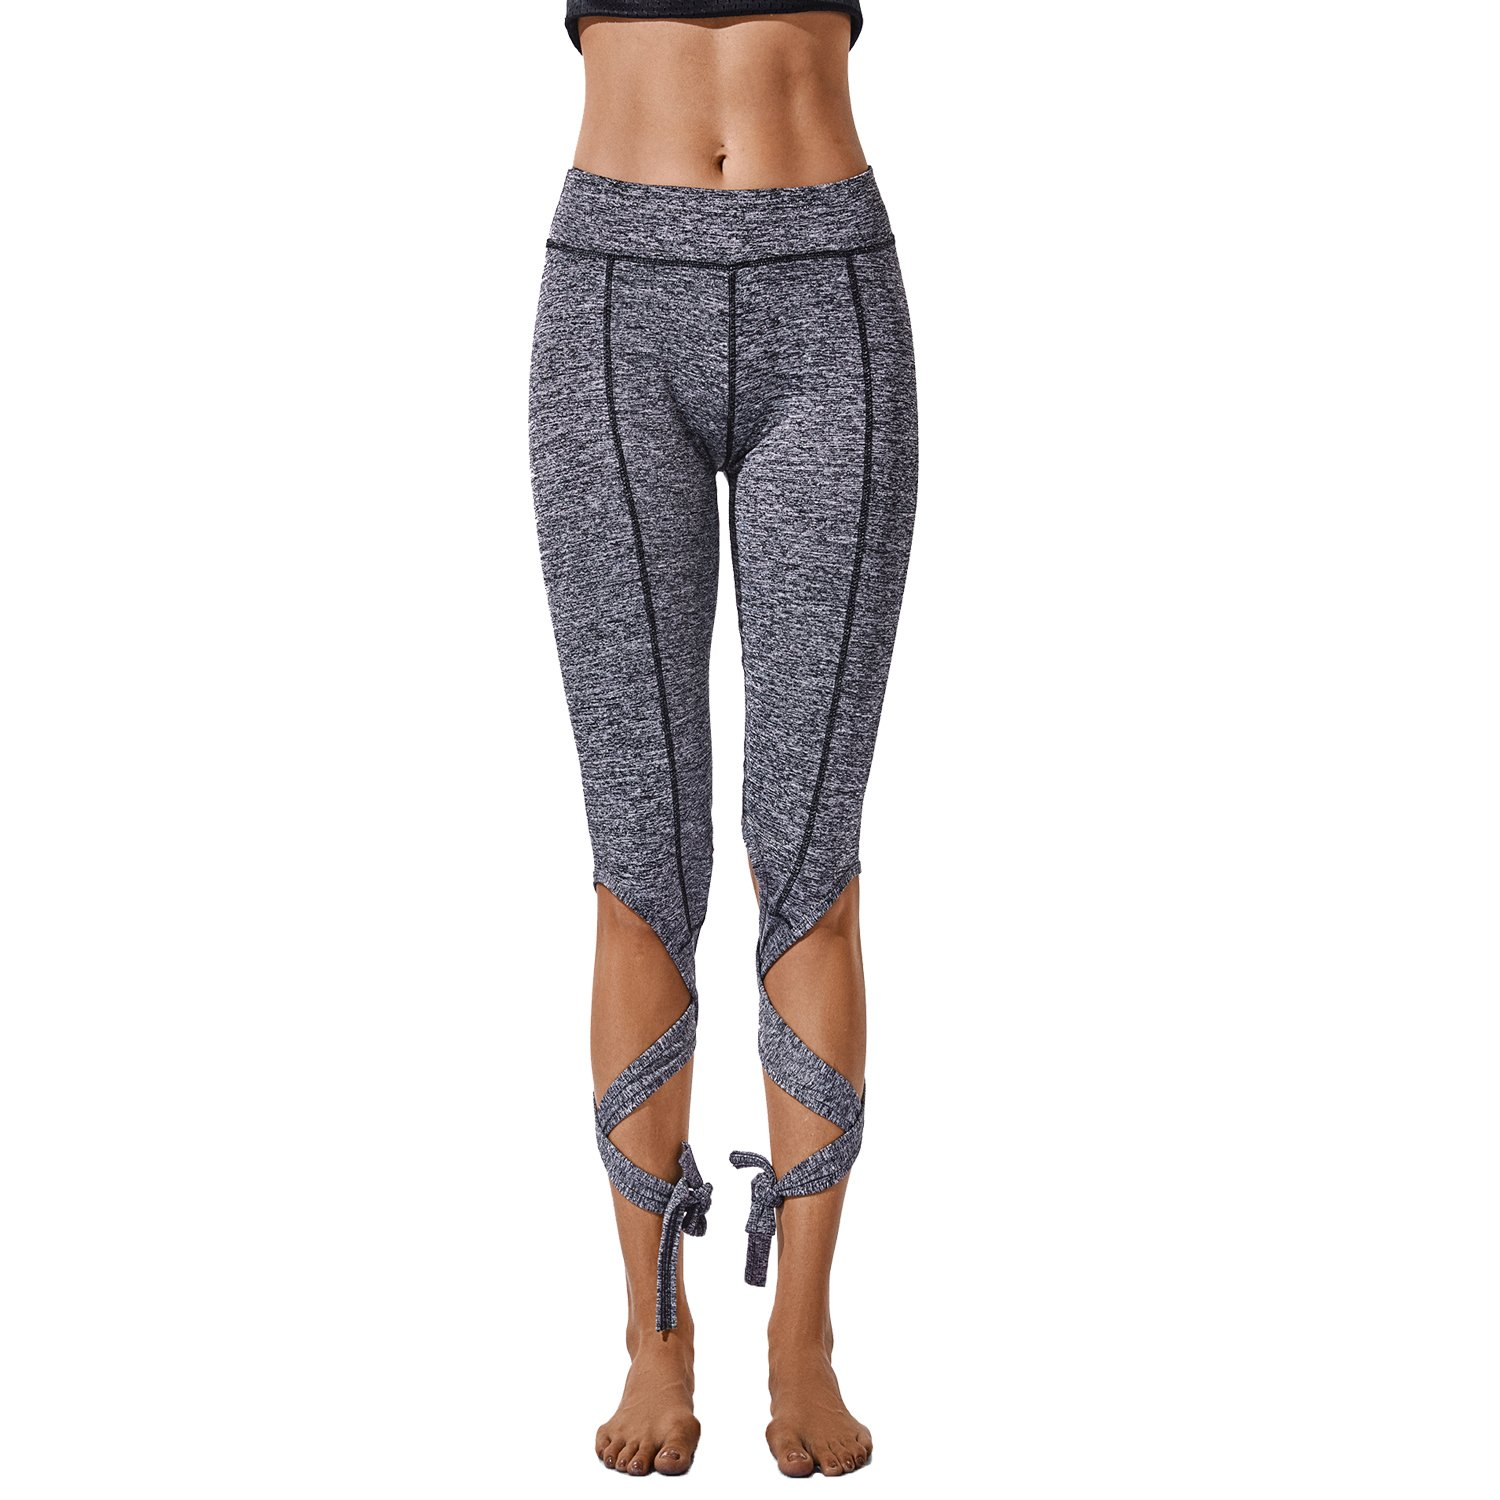 5620a1fb74473 Ballet Bandage Yoga Pants High Waist Lace up Sport Leggings Fitness Cross  Tight at Amazon Women's Clothing store: